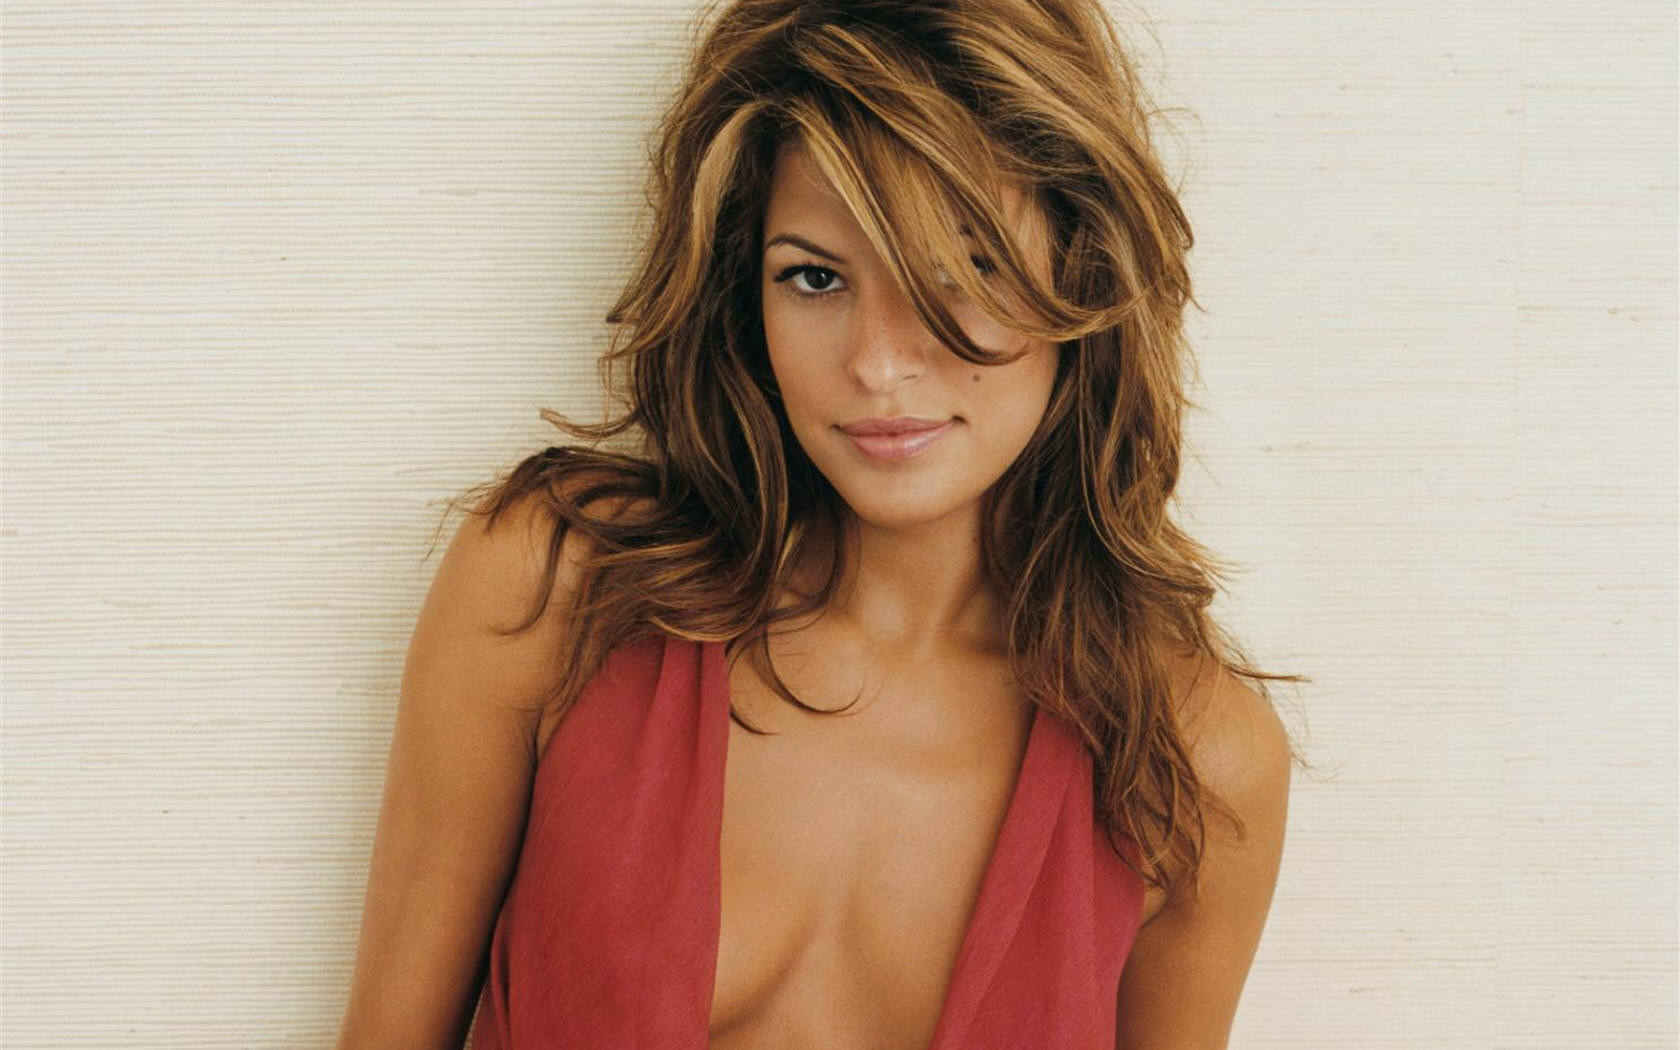 Cleavage Eva Mendes naked (46 photo), Topless, Paparazzi, Instagram, legs 2020